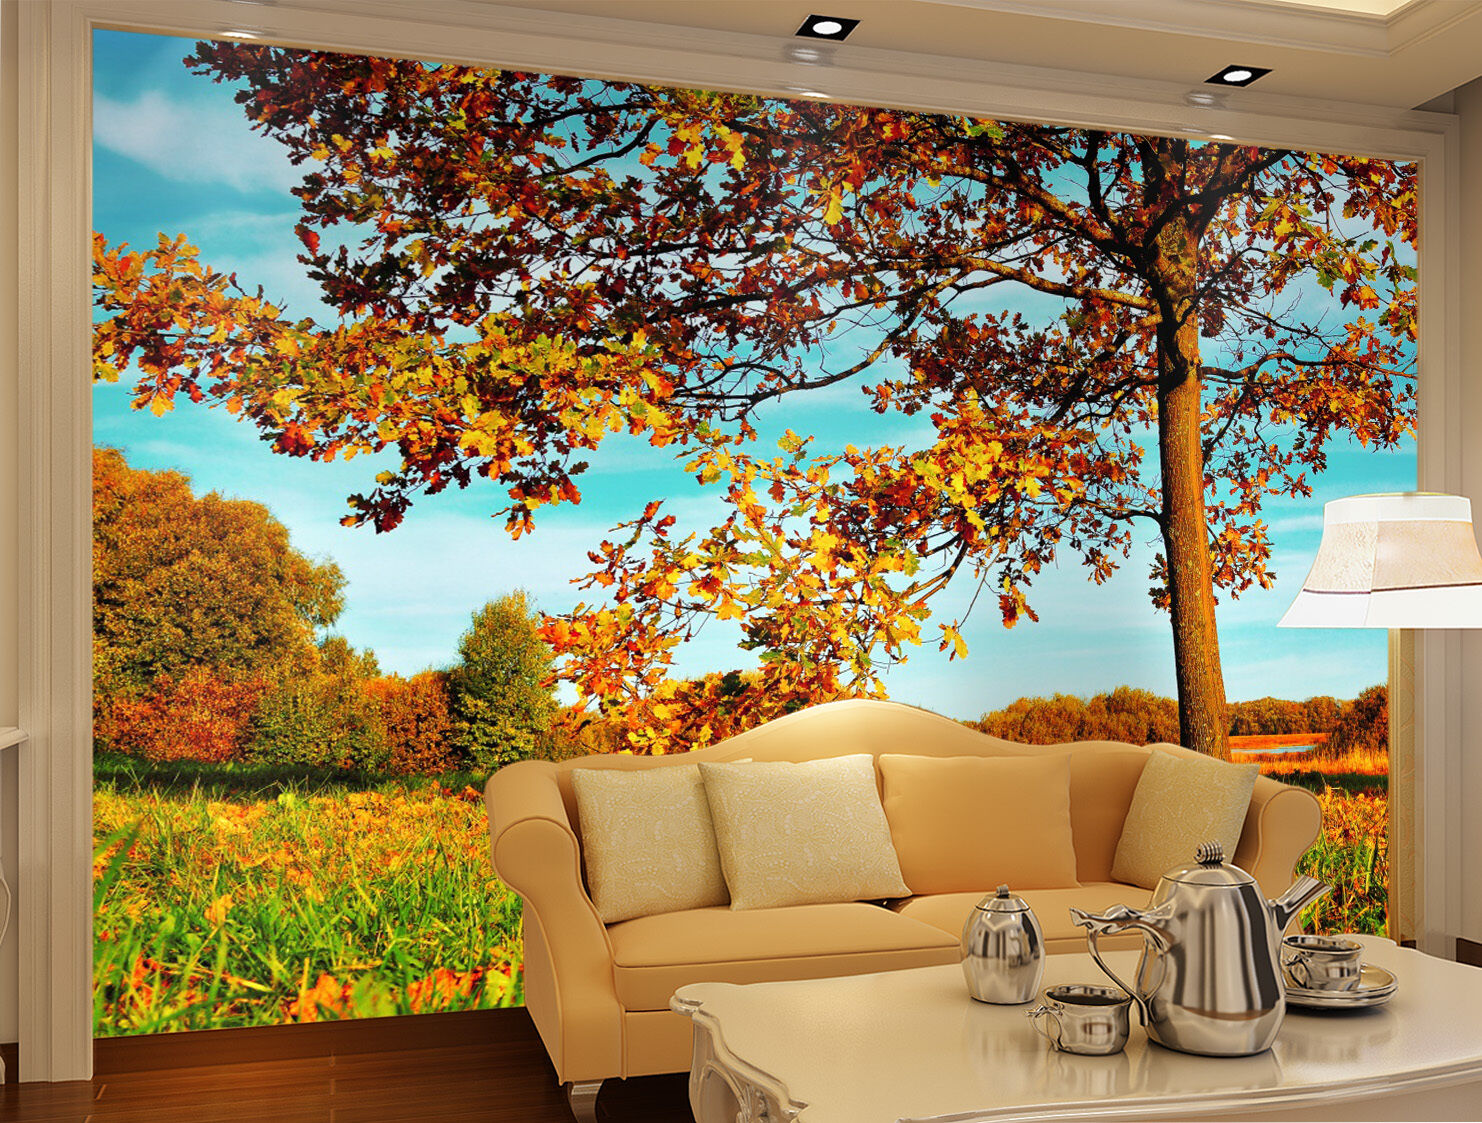 3D Farbeful Tree 1143 WallPaper Murals Wall Print Decal Wall Deco AJ WALLPAPER